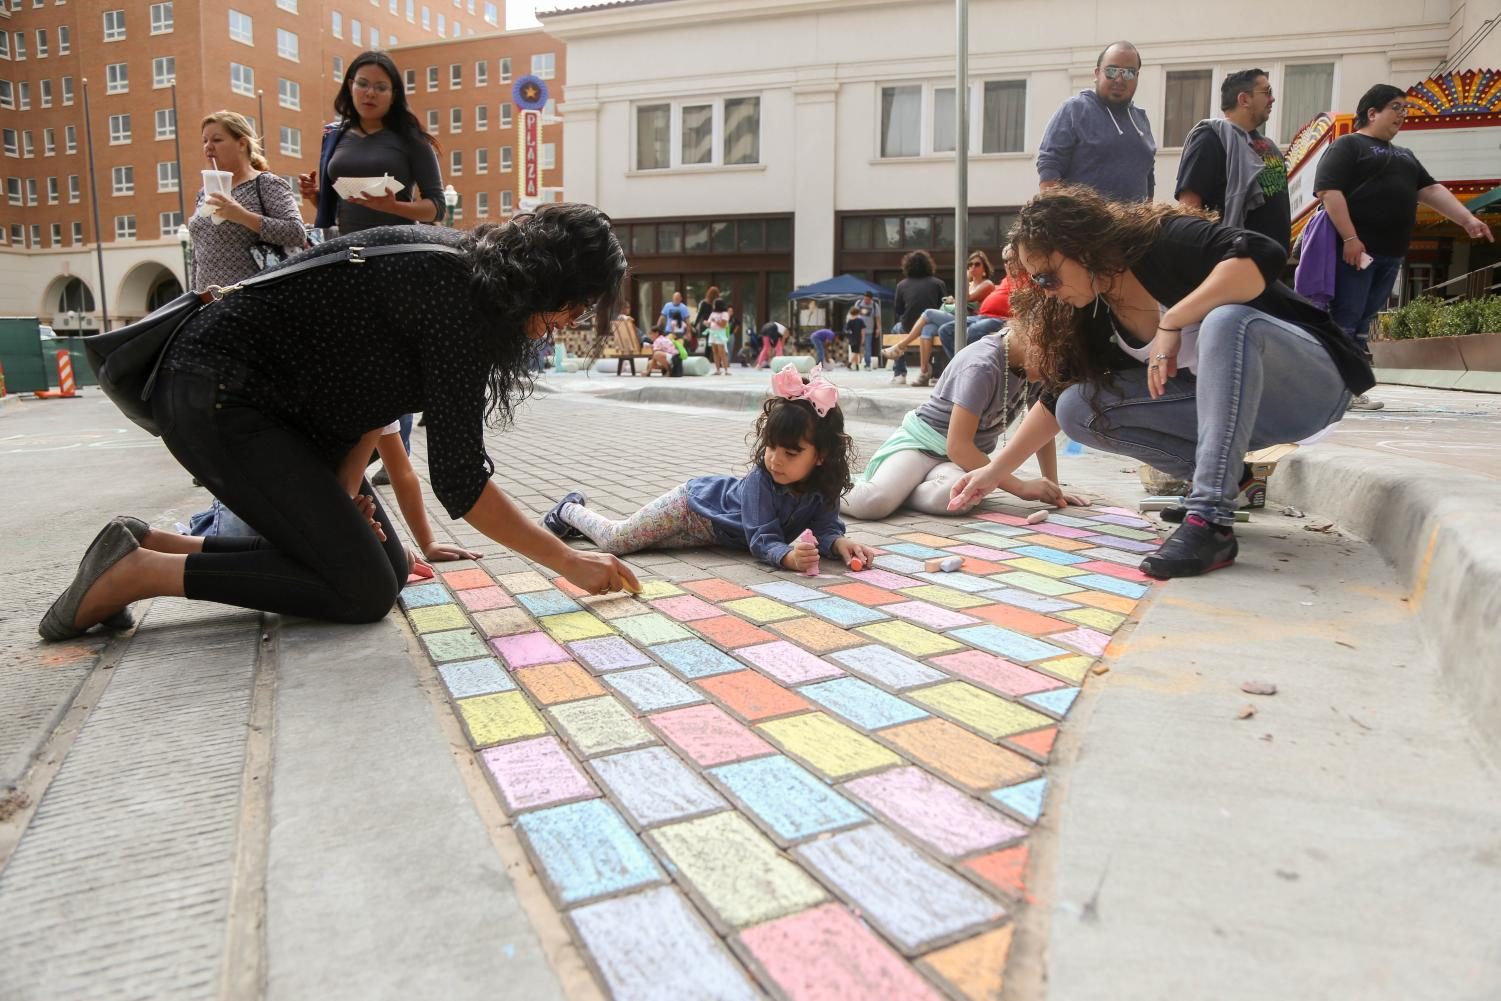 The+community+show+off+their+drawings+skills+n+the+sidewalk+of+Down+Town+El+Paso+at+the+annual+Chalk+the+Block+on+Saturday%2C+Oct.+13.+